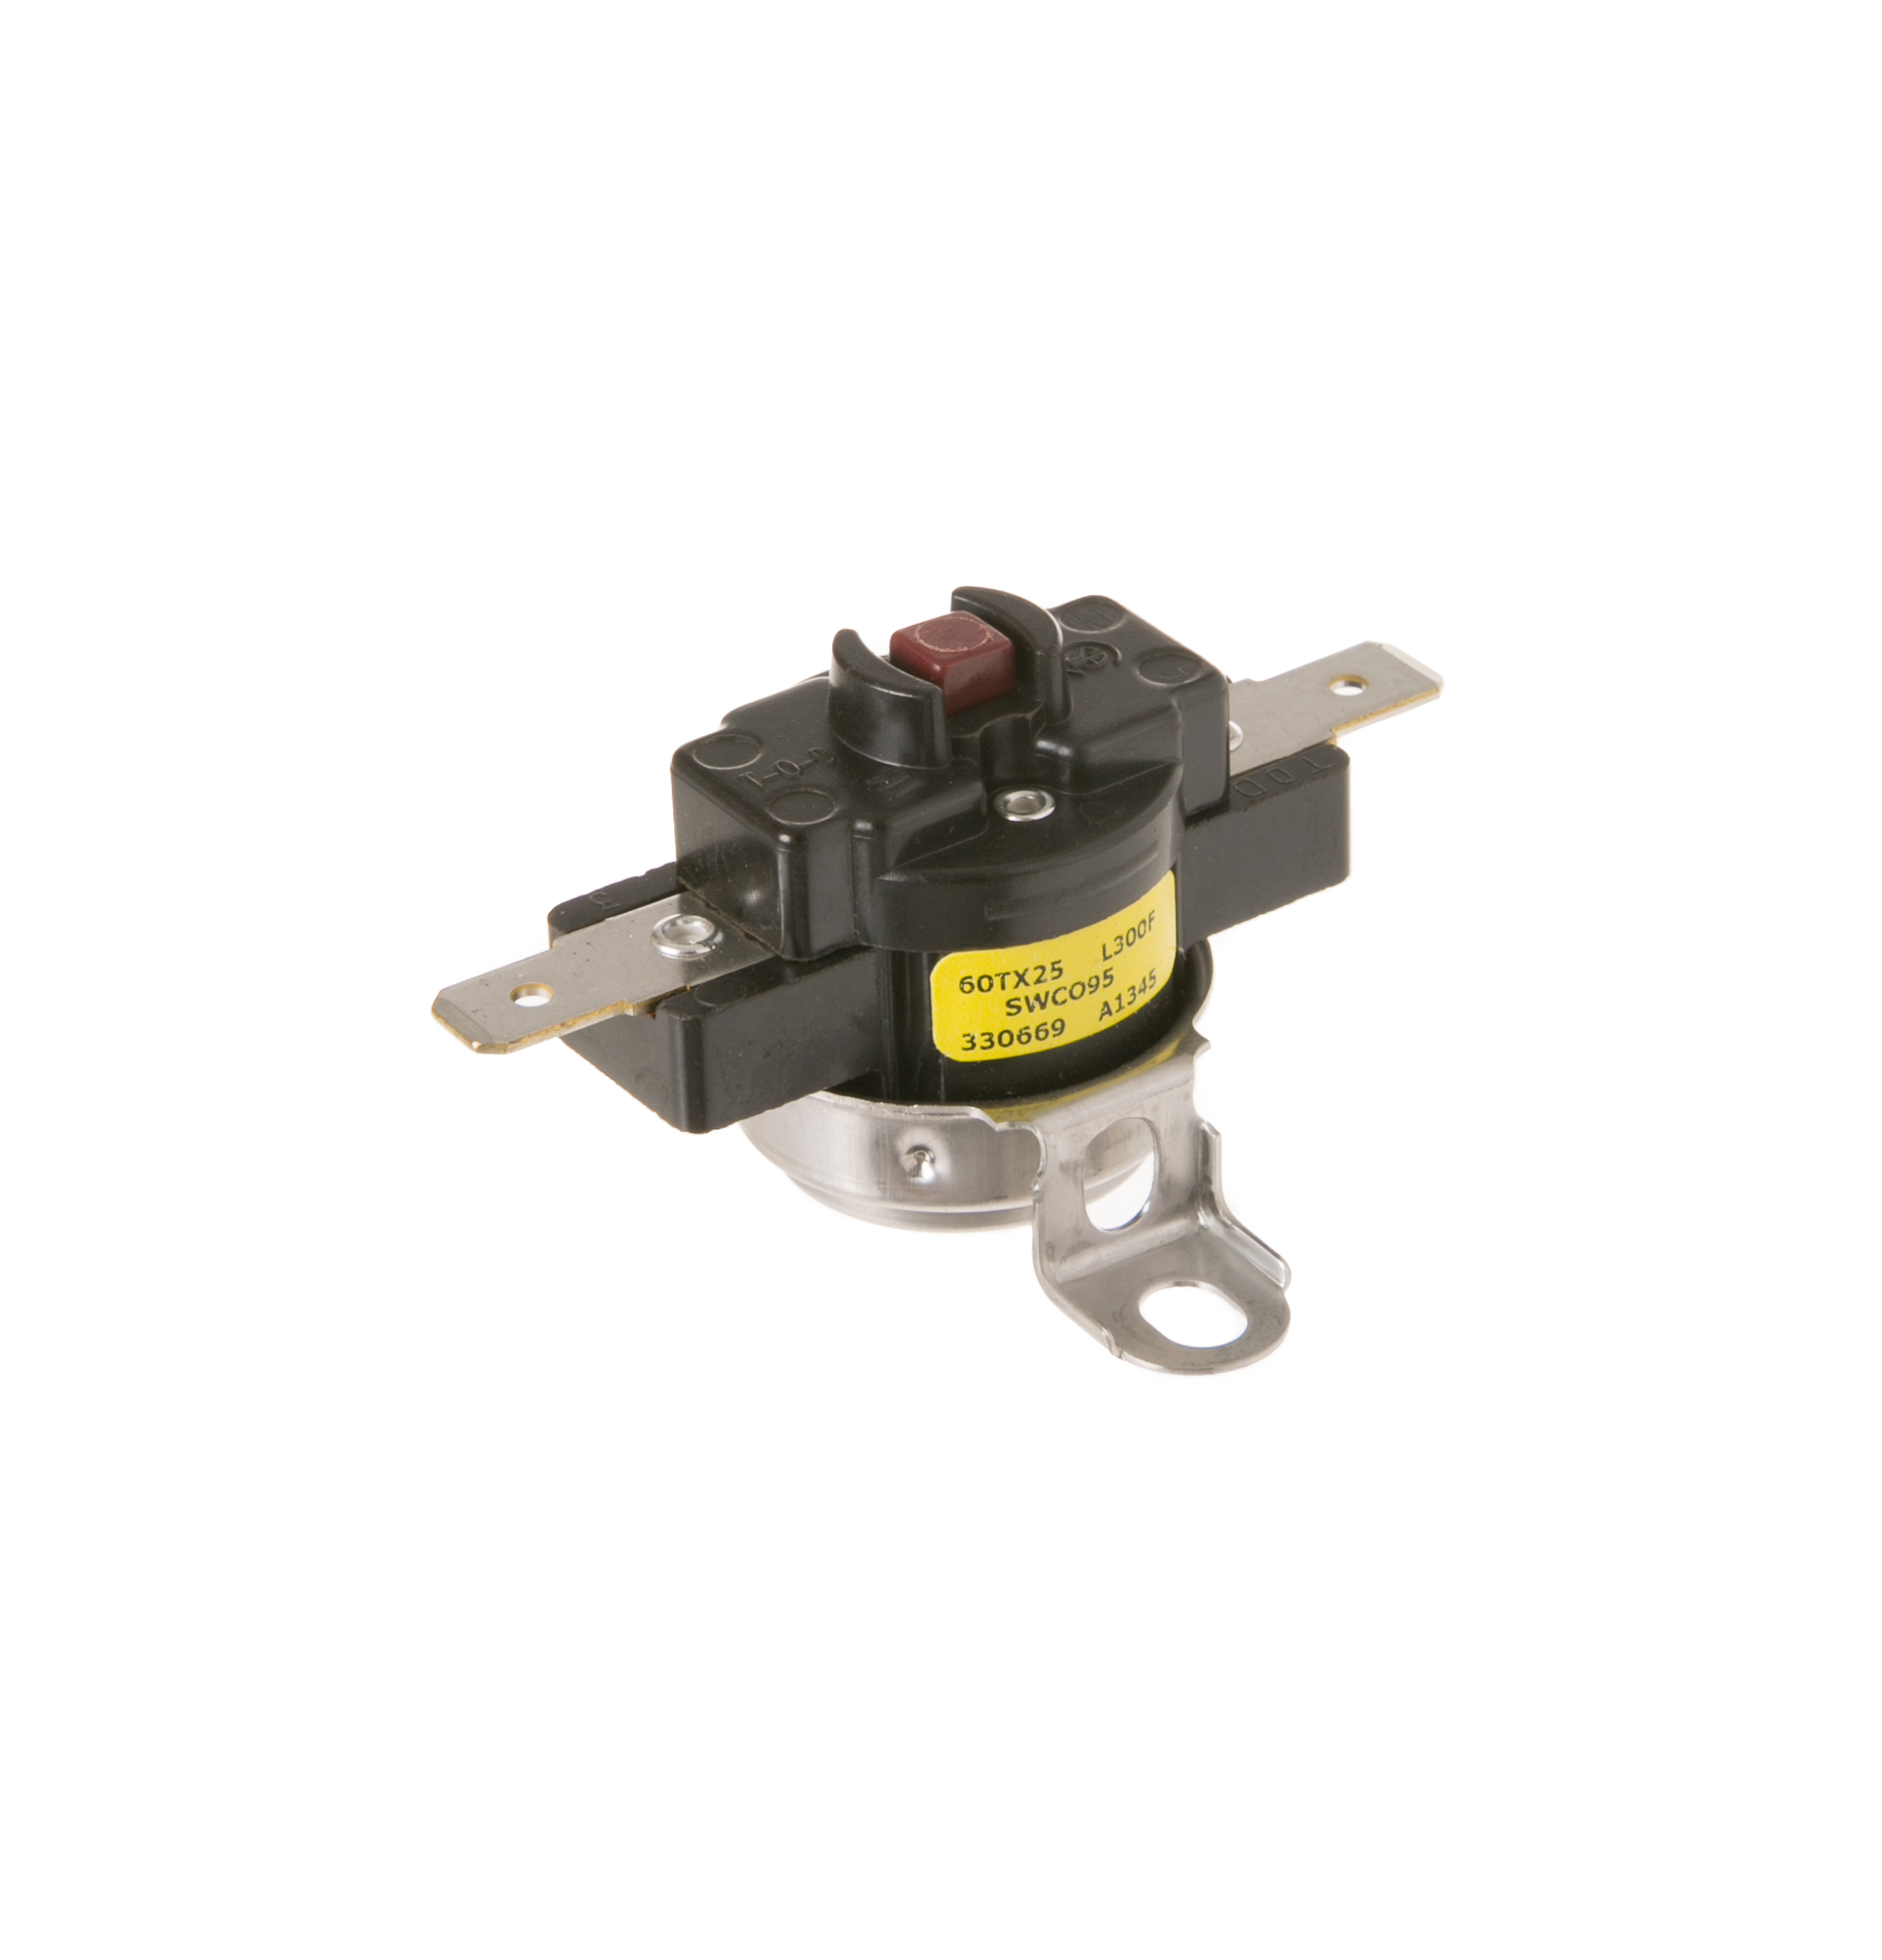 Kenmore 363 4842992 High Limit Thermostat Switch